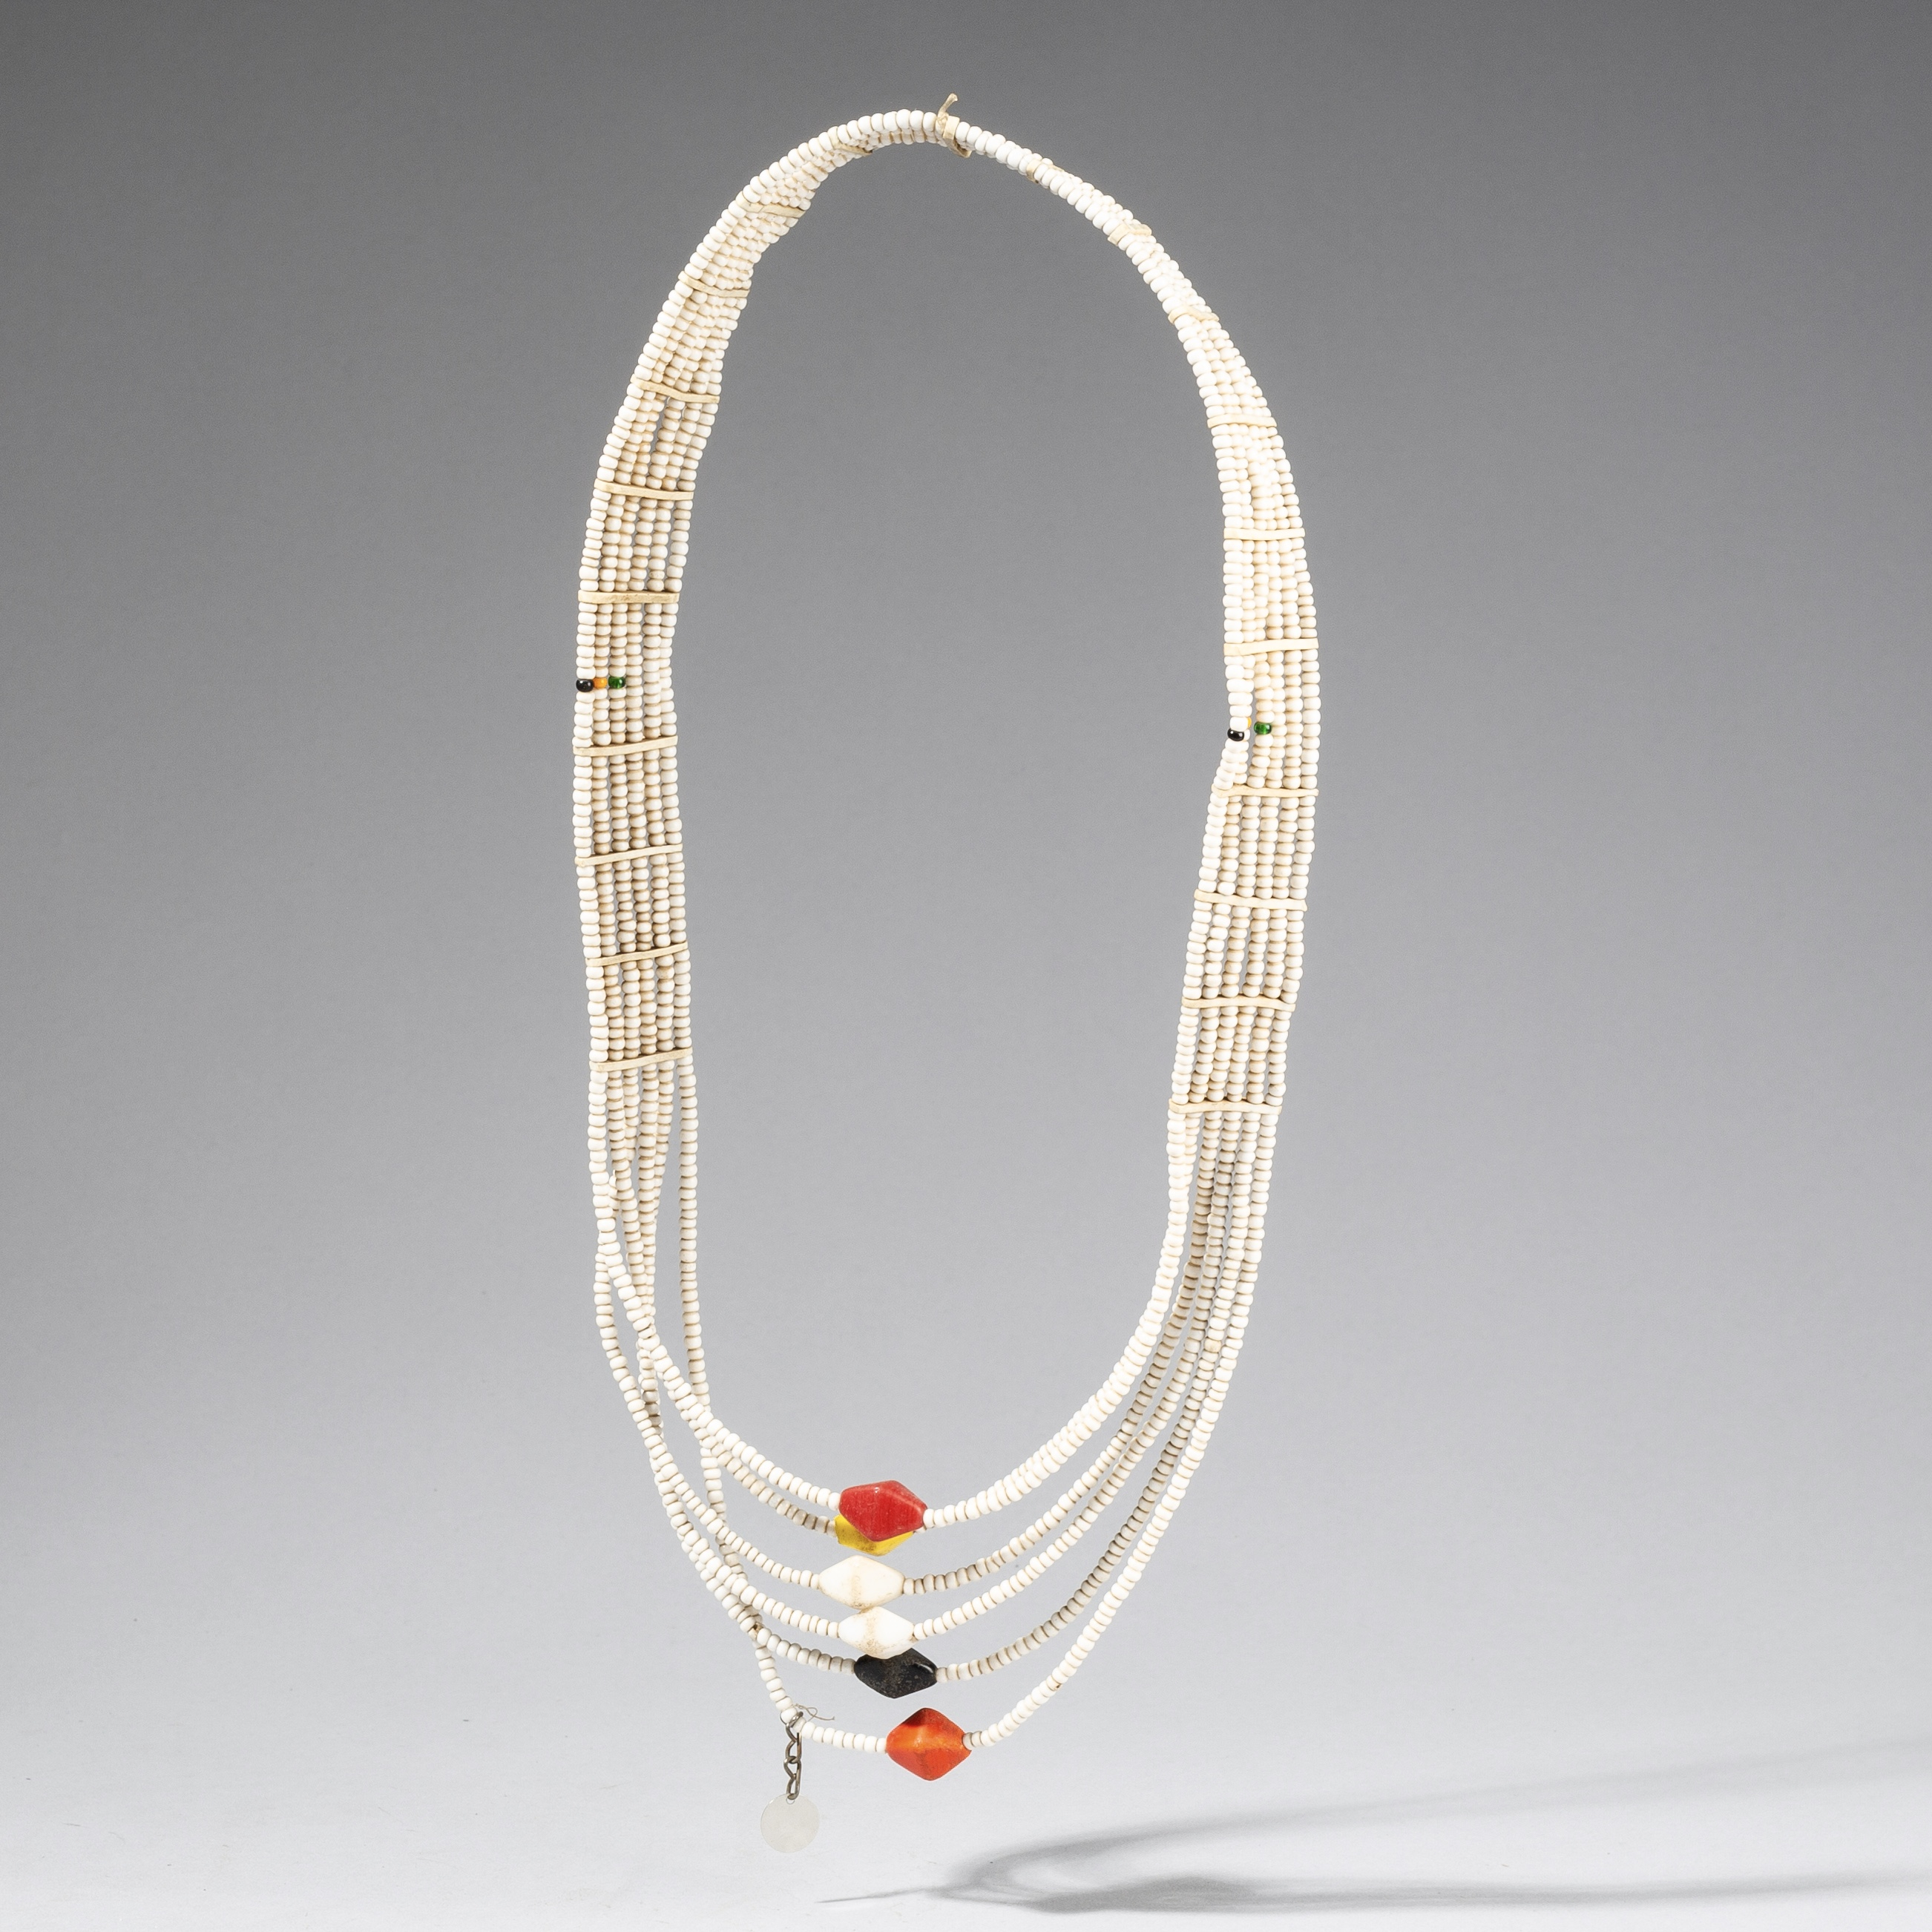 A HARMONIOUS MAASAI NECKLACE WITH CZECH GLASS TRADE BEADS,TANZANIA ( No 3652)